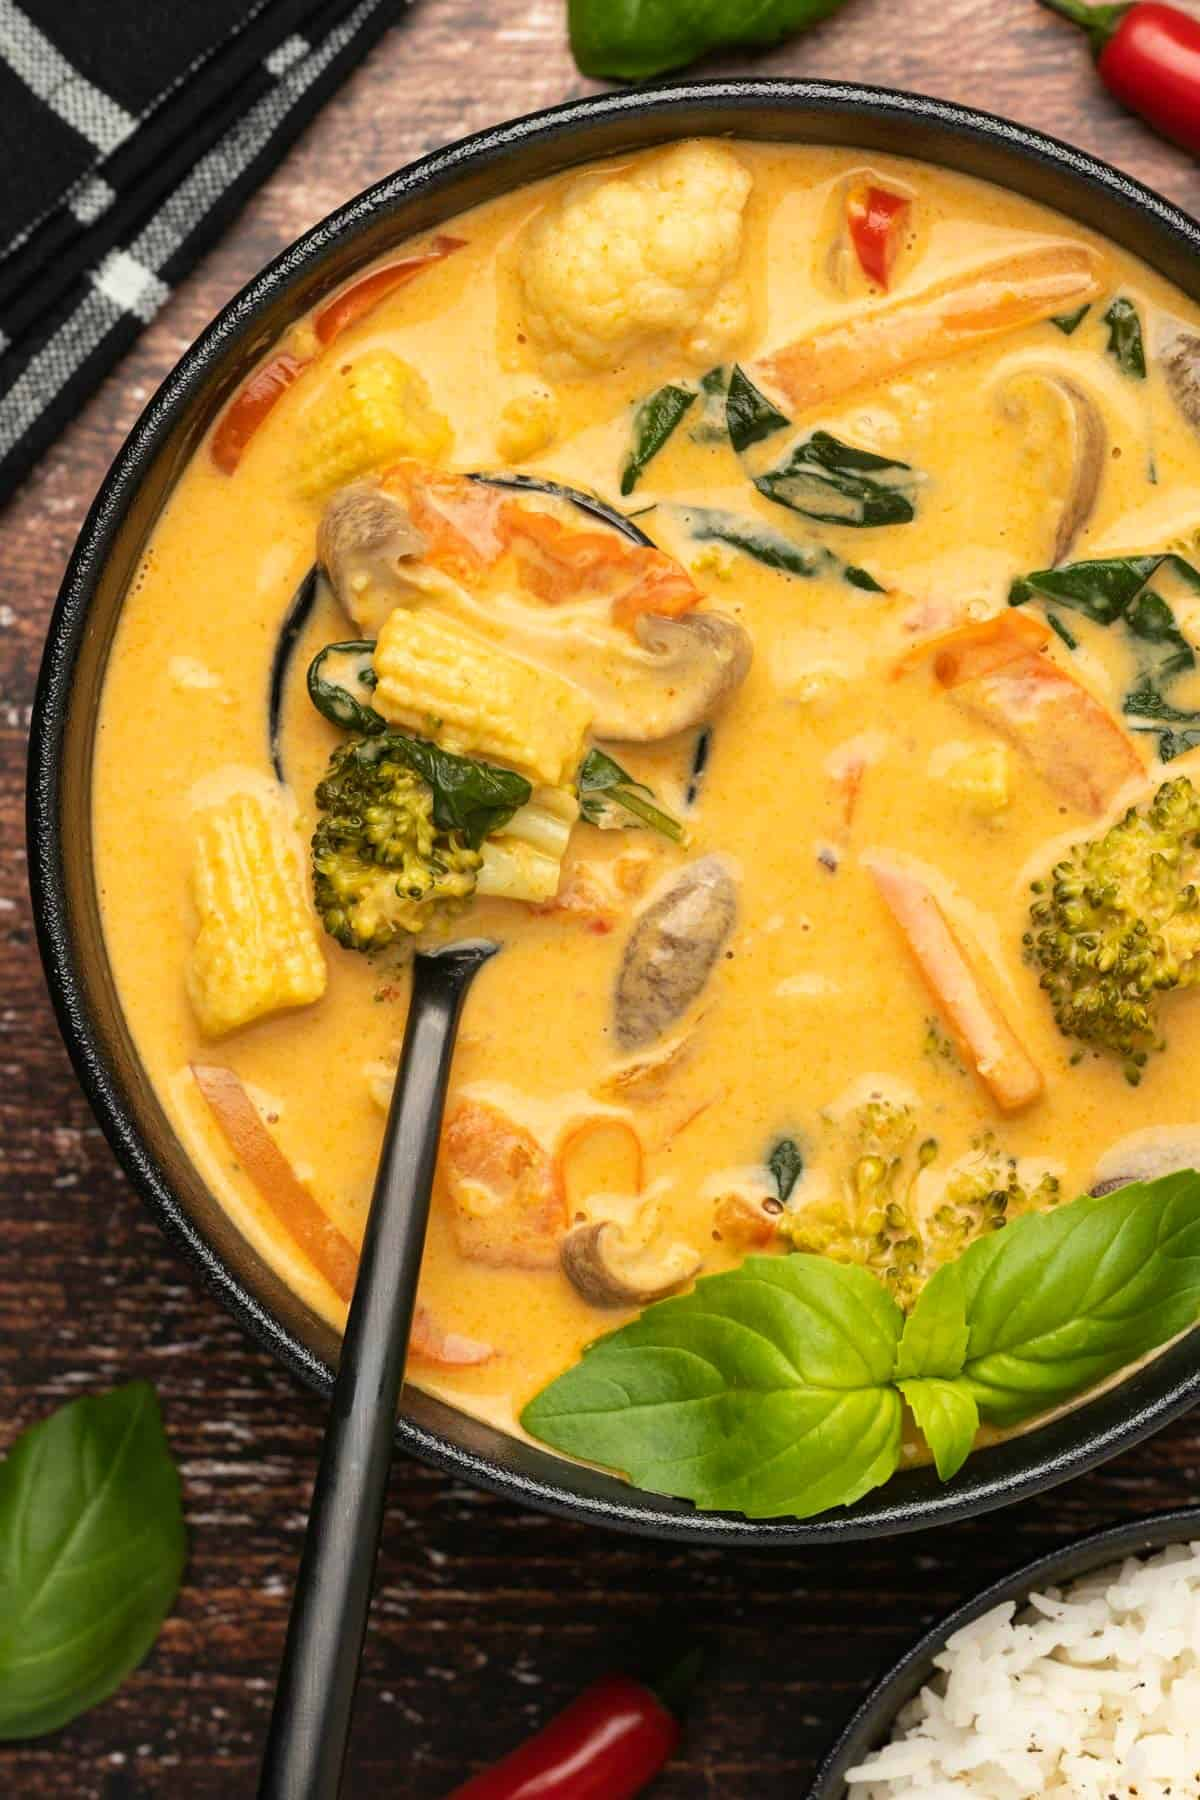 Thai red curry with fresh basil in a bowl with a spoon.